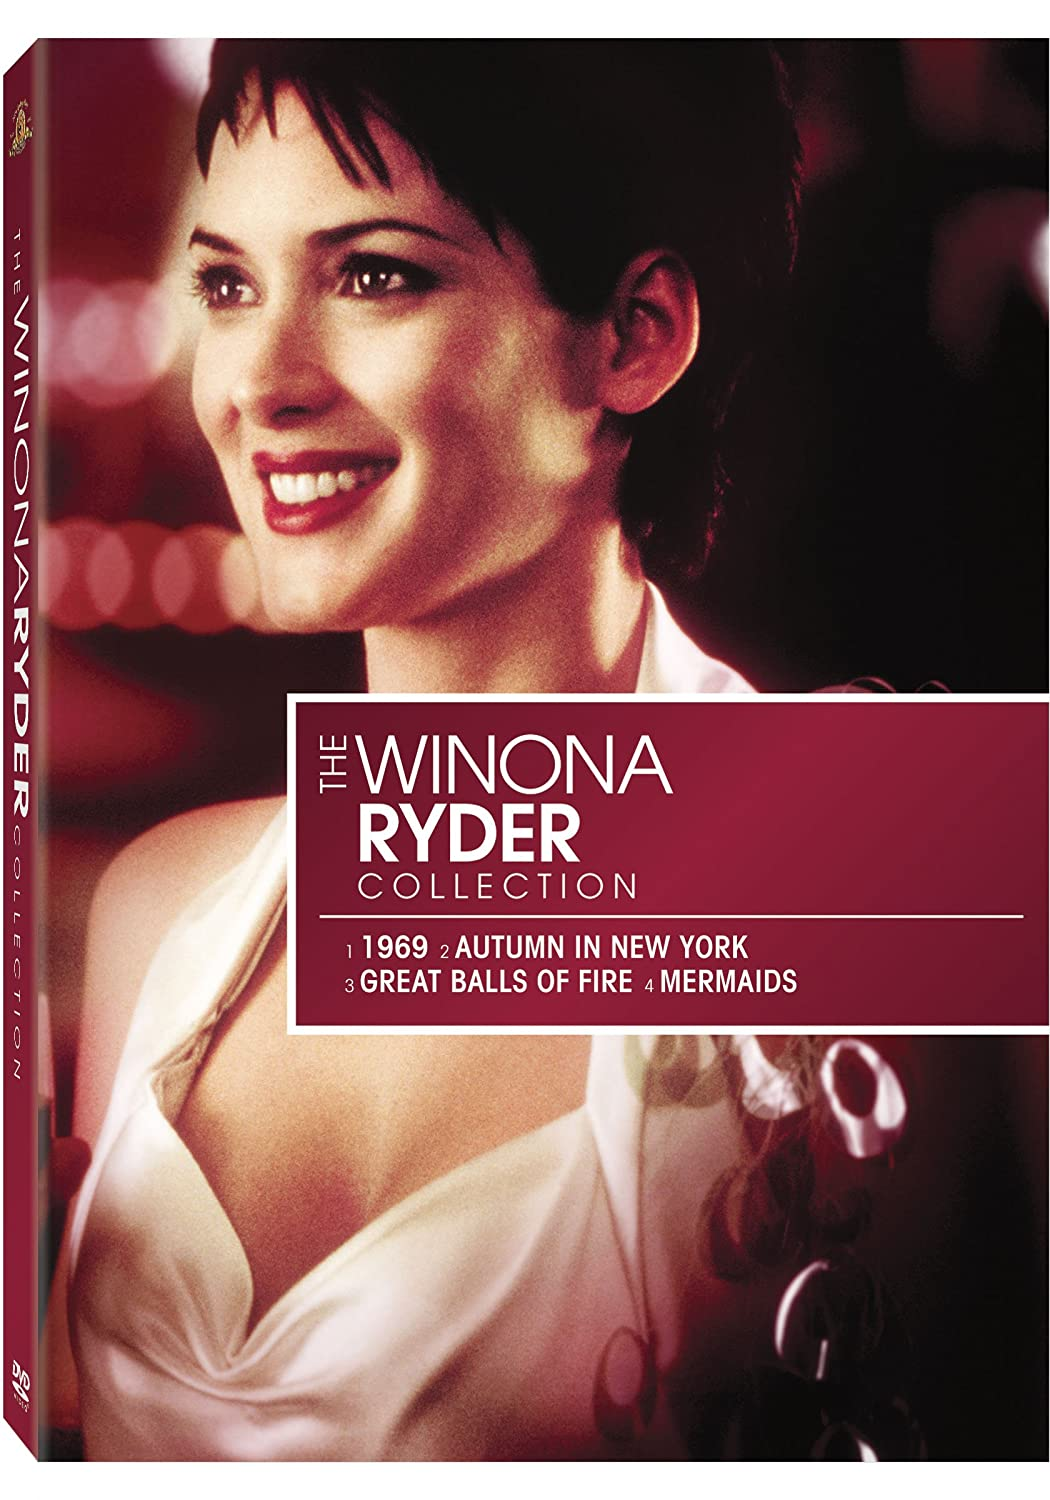 sold out The National products Winona Ryder Star Collection Mermaids York Autumn New in